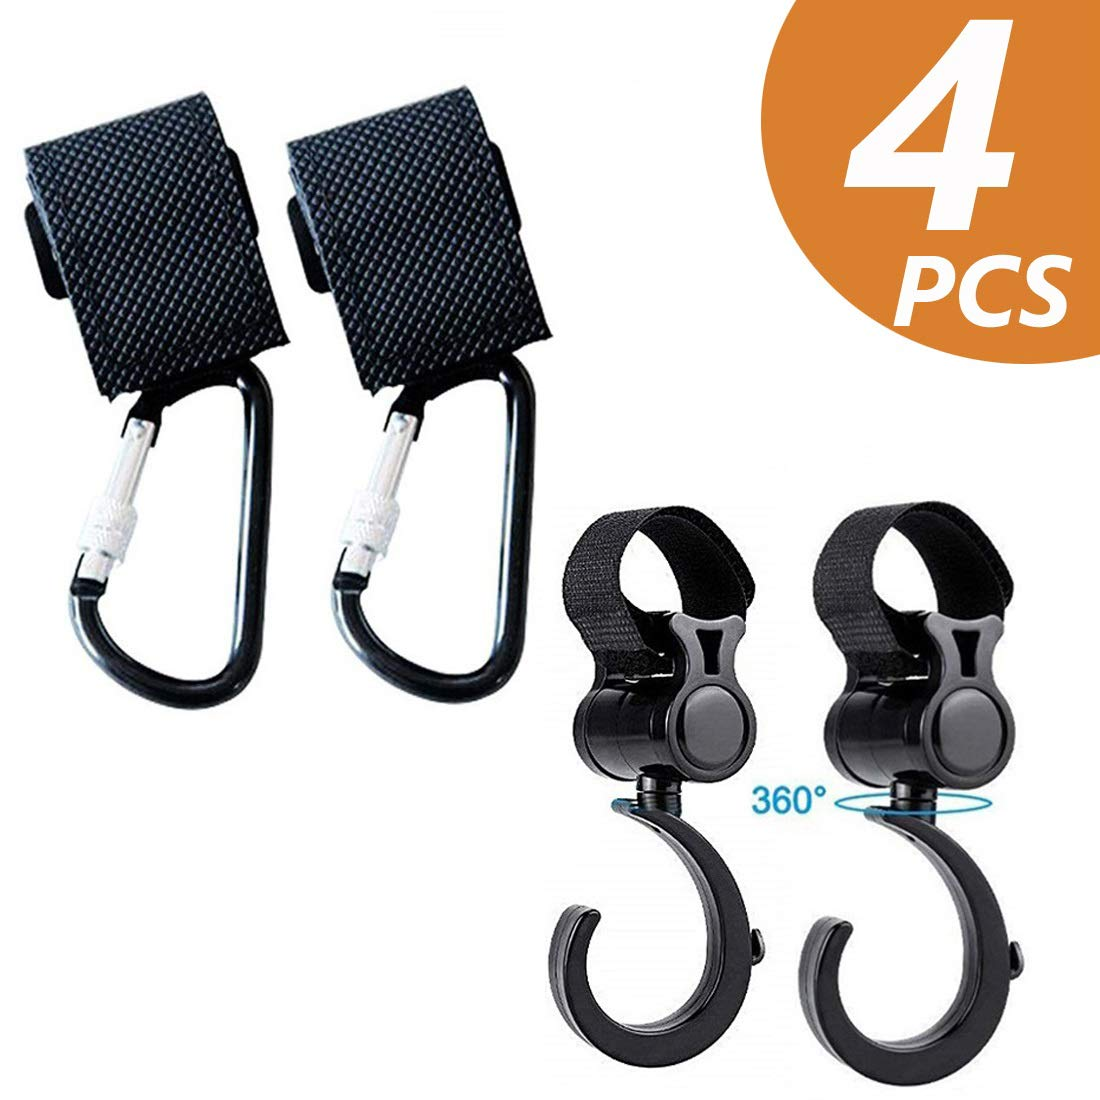 TECHSON 2X Stroller Hooks Multi Purpose Hanger for Baby Diaper Bags, Great Organizer Accessory for Mommy When Jogging Walking or Shopping (Black) (4 Pack) by Techson